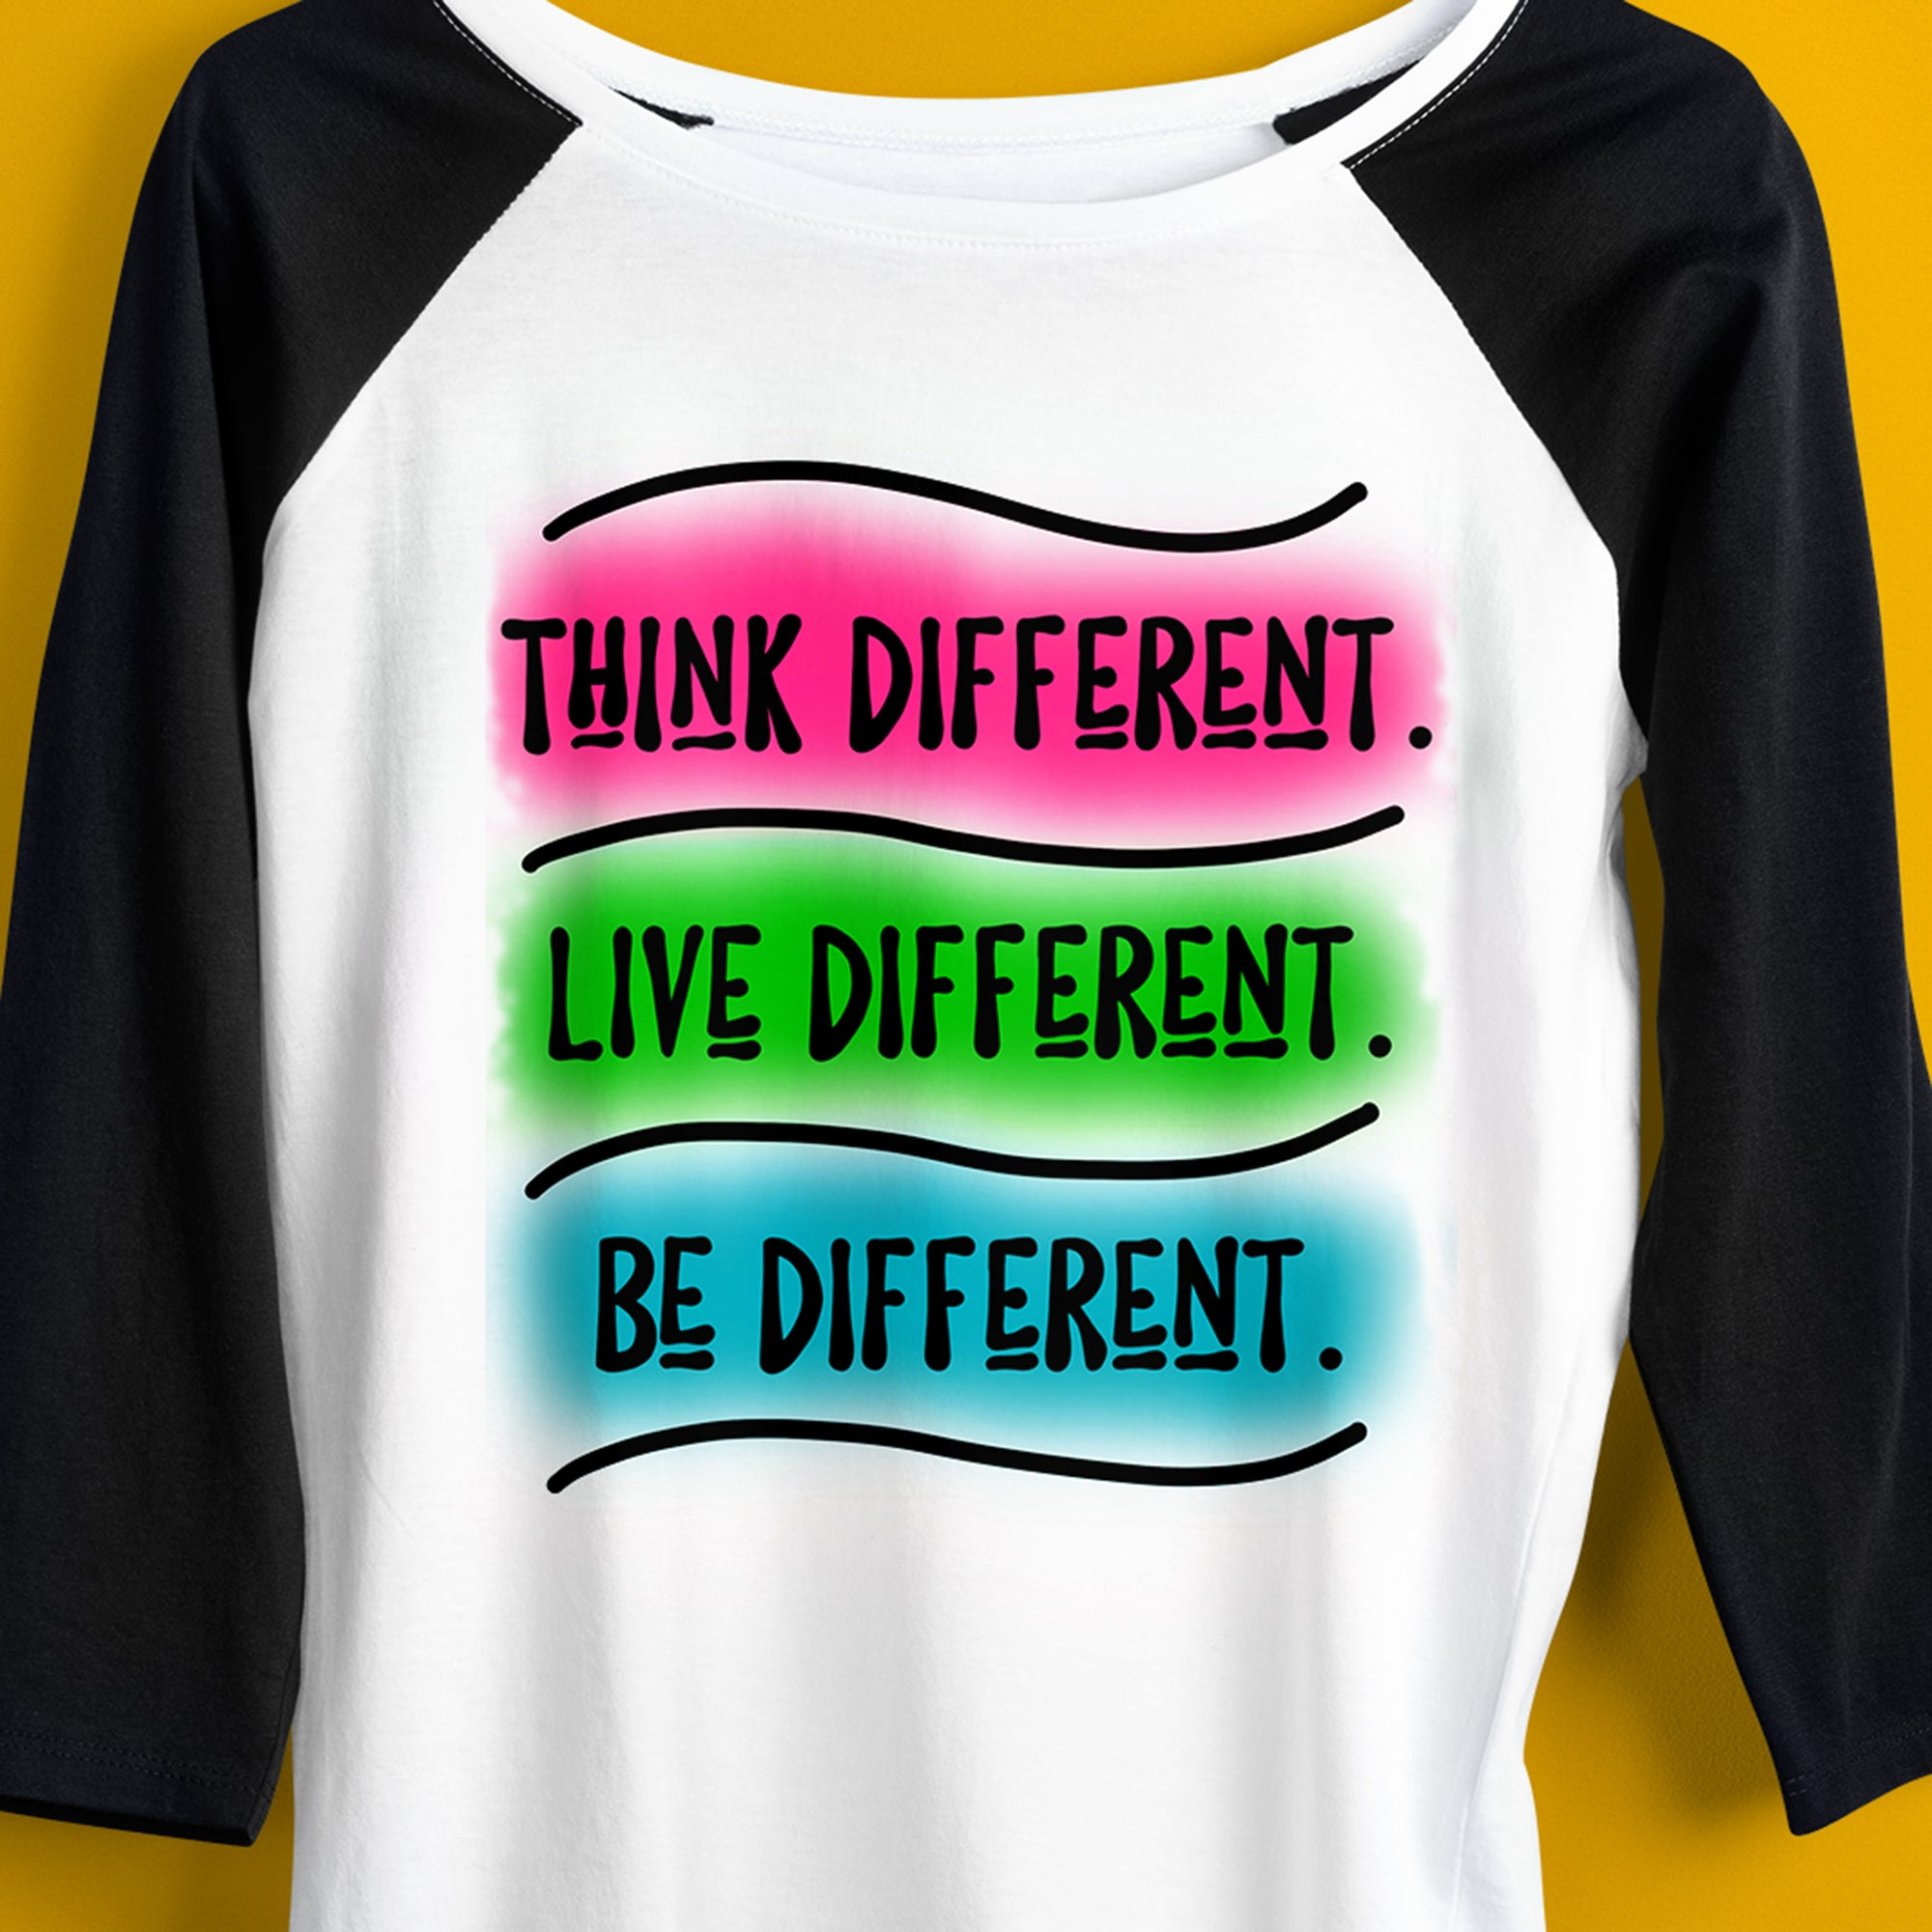 Think Different Be Different Sublimation Design, Black Lives Matter Movement Sublimation Design File, BLM Sublimation Digital Download, BLM DTG Design File